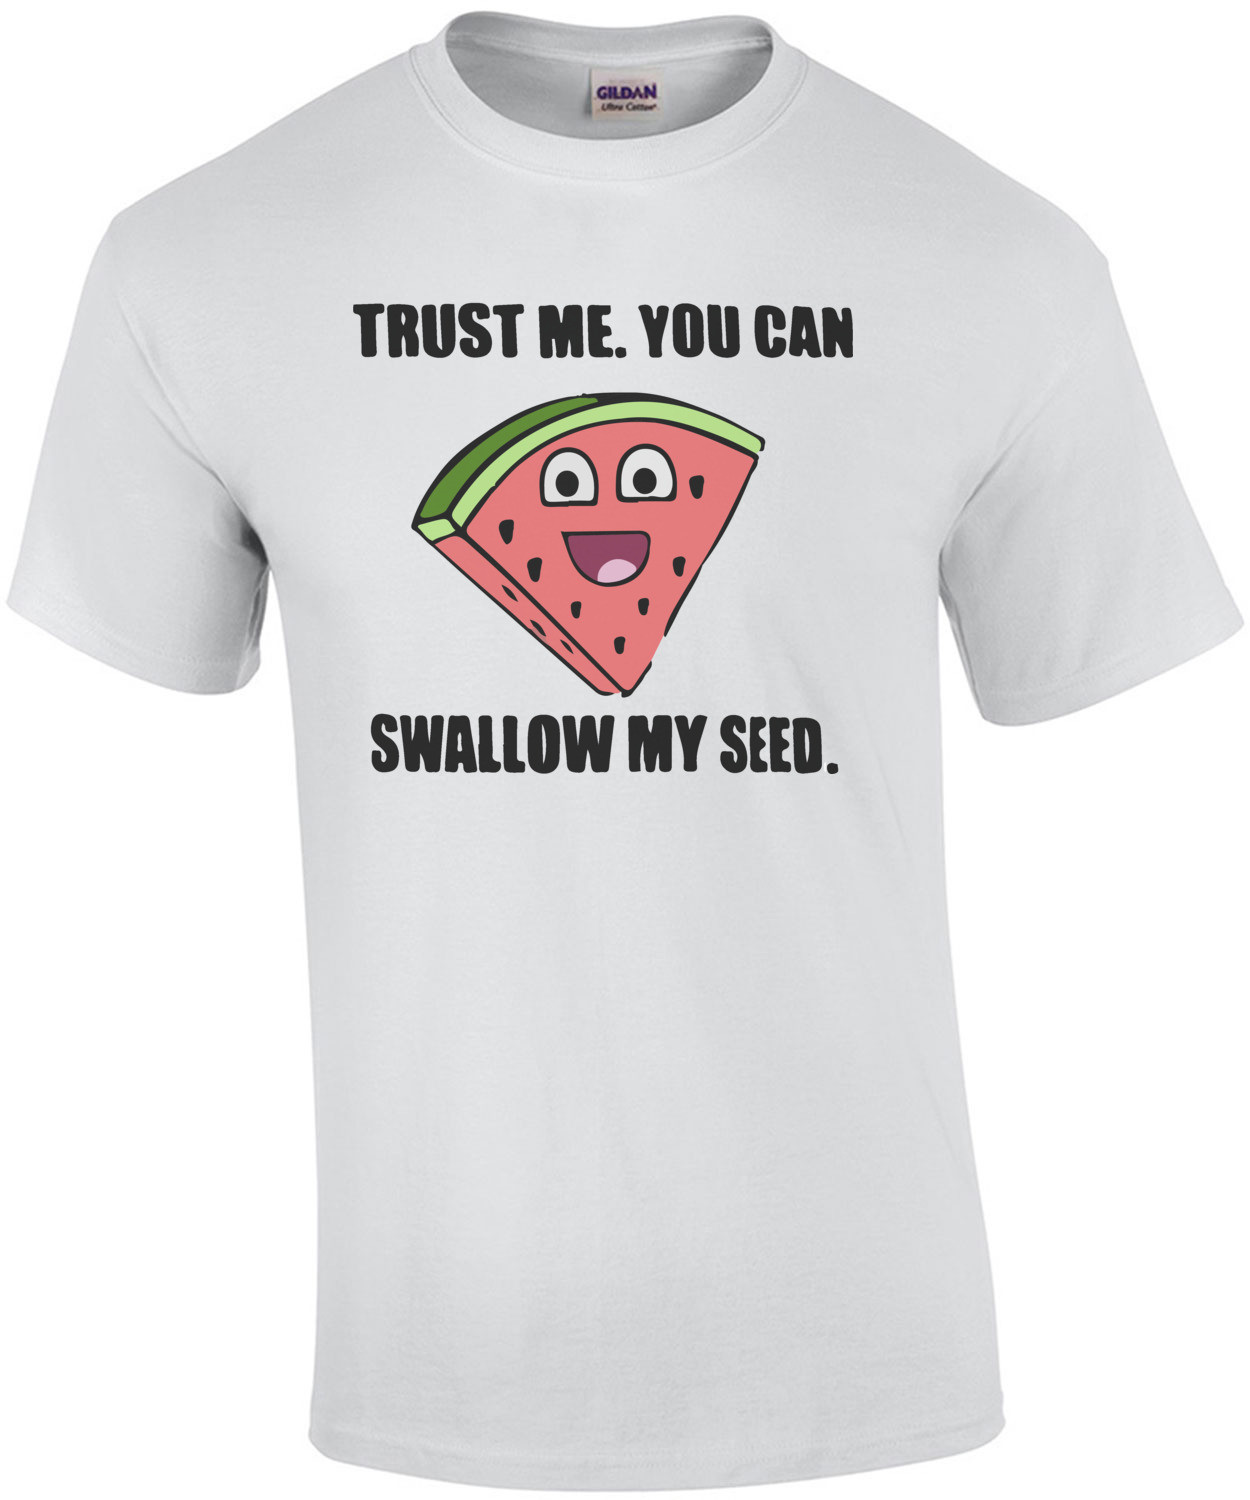 Trust me. You can swallow my seed. Funny Offensive T-Shirt - Sexual T-Shirt